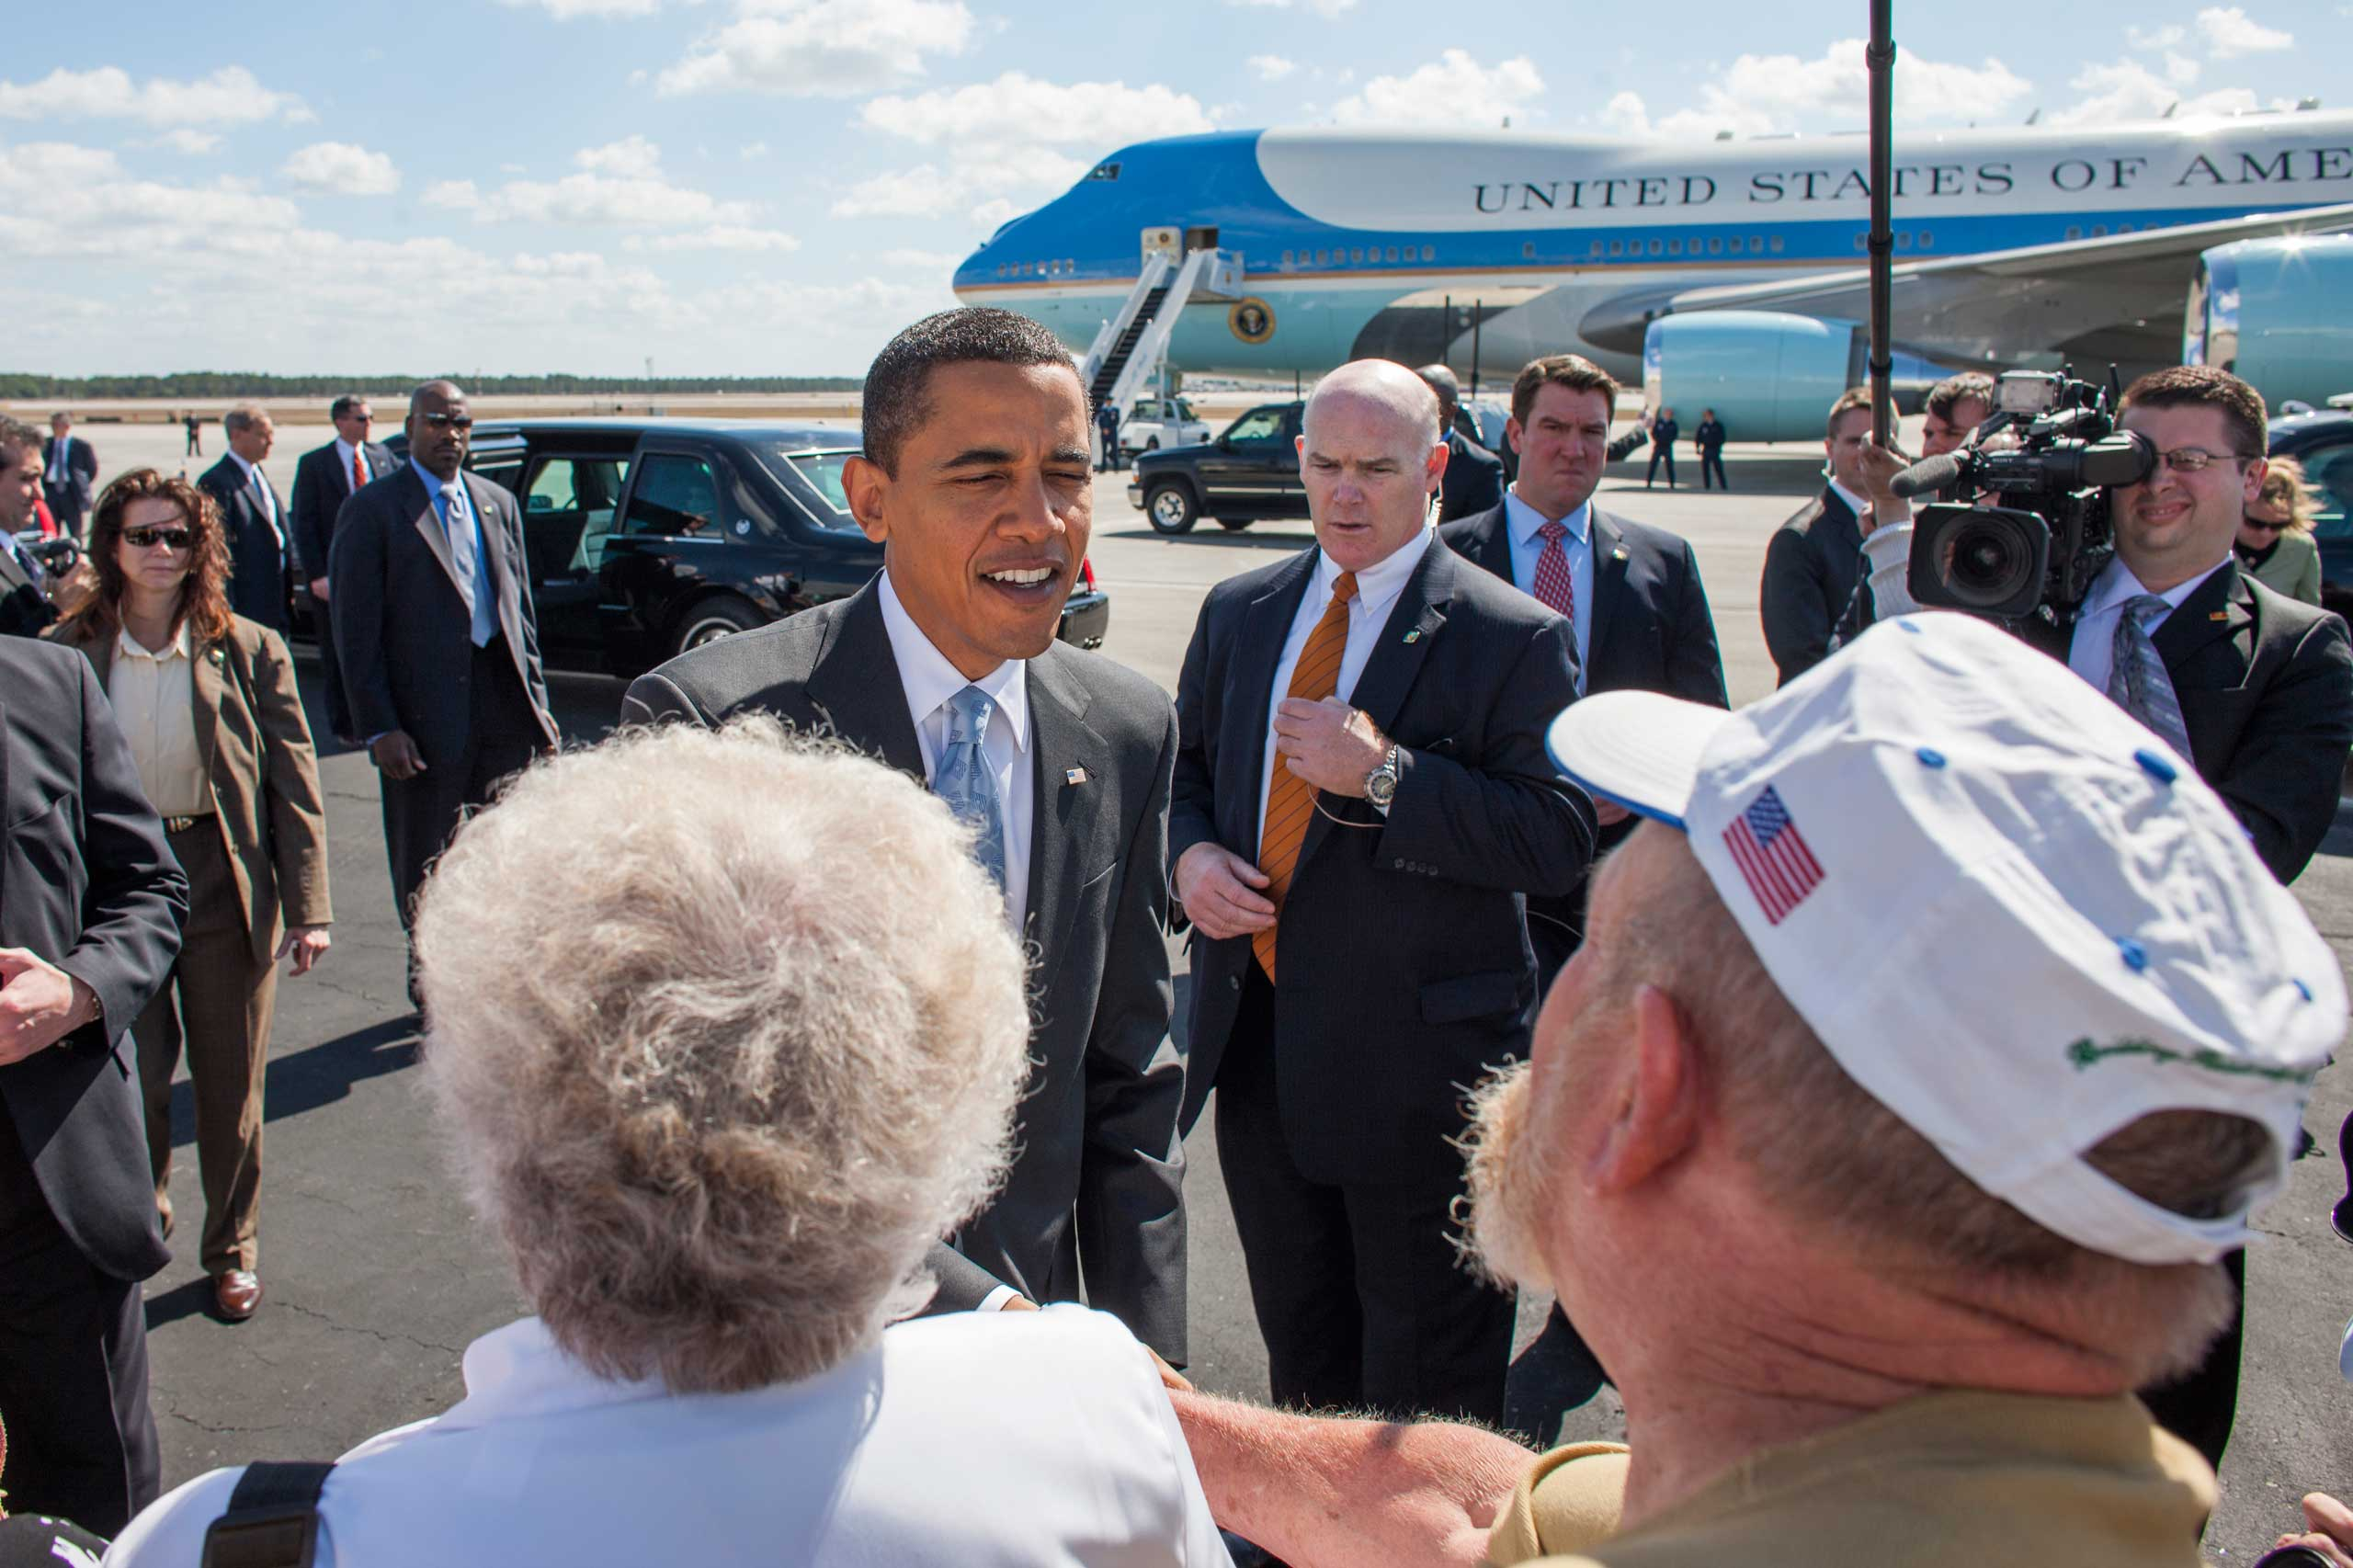 President Barack Obama greets supporters at the Fort Meyers airport in Florida, as Clancy stands watch behind the President's left shoulder, Feb. 10, 2009.